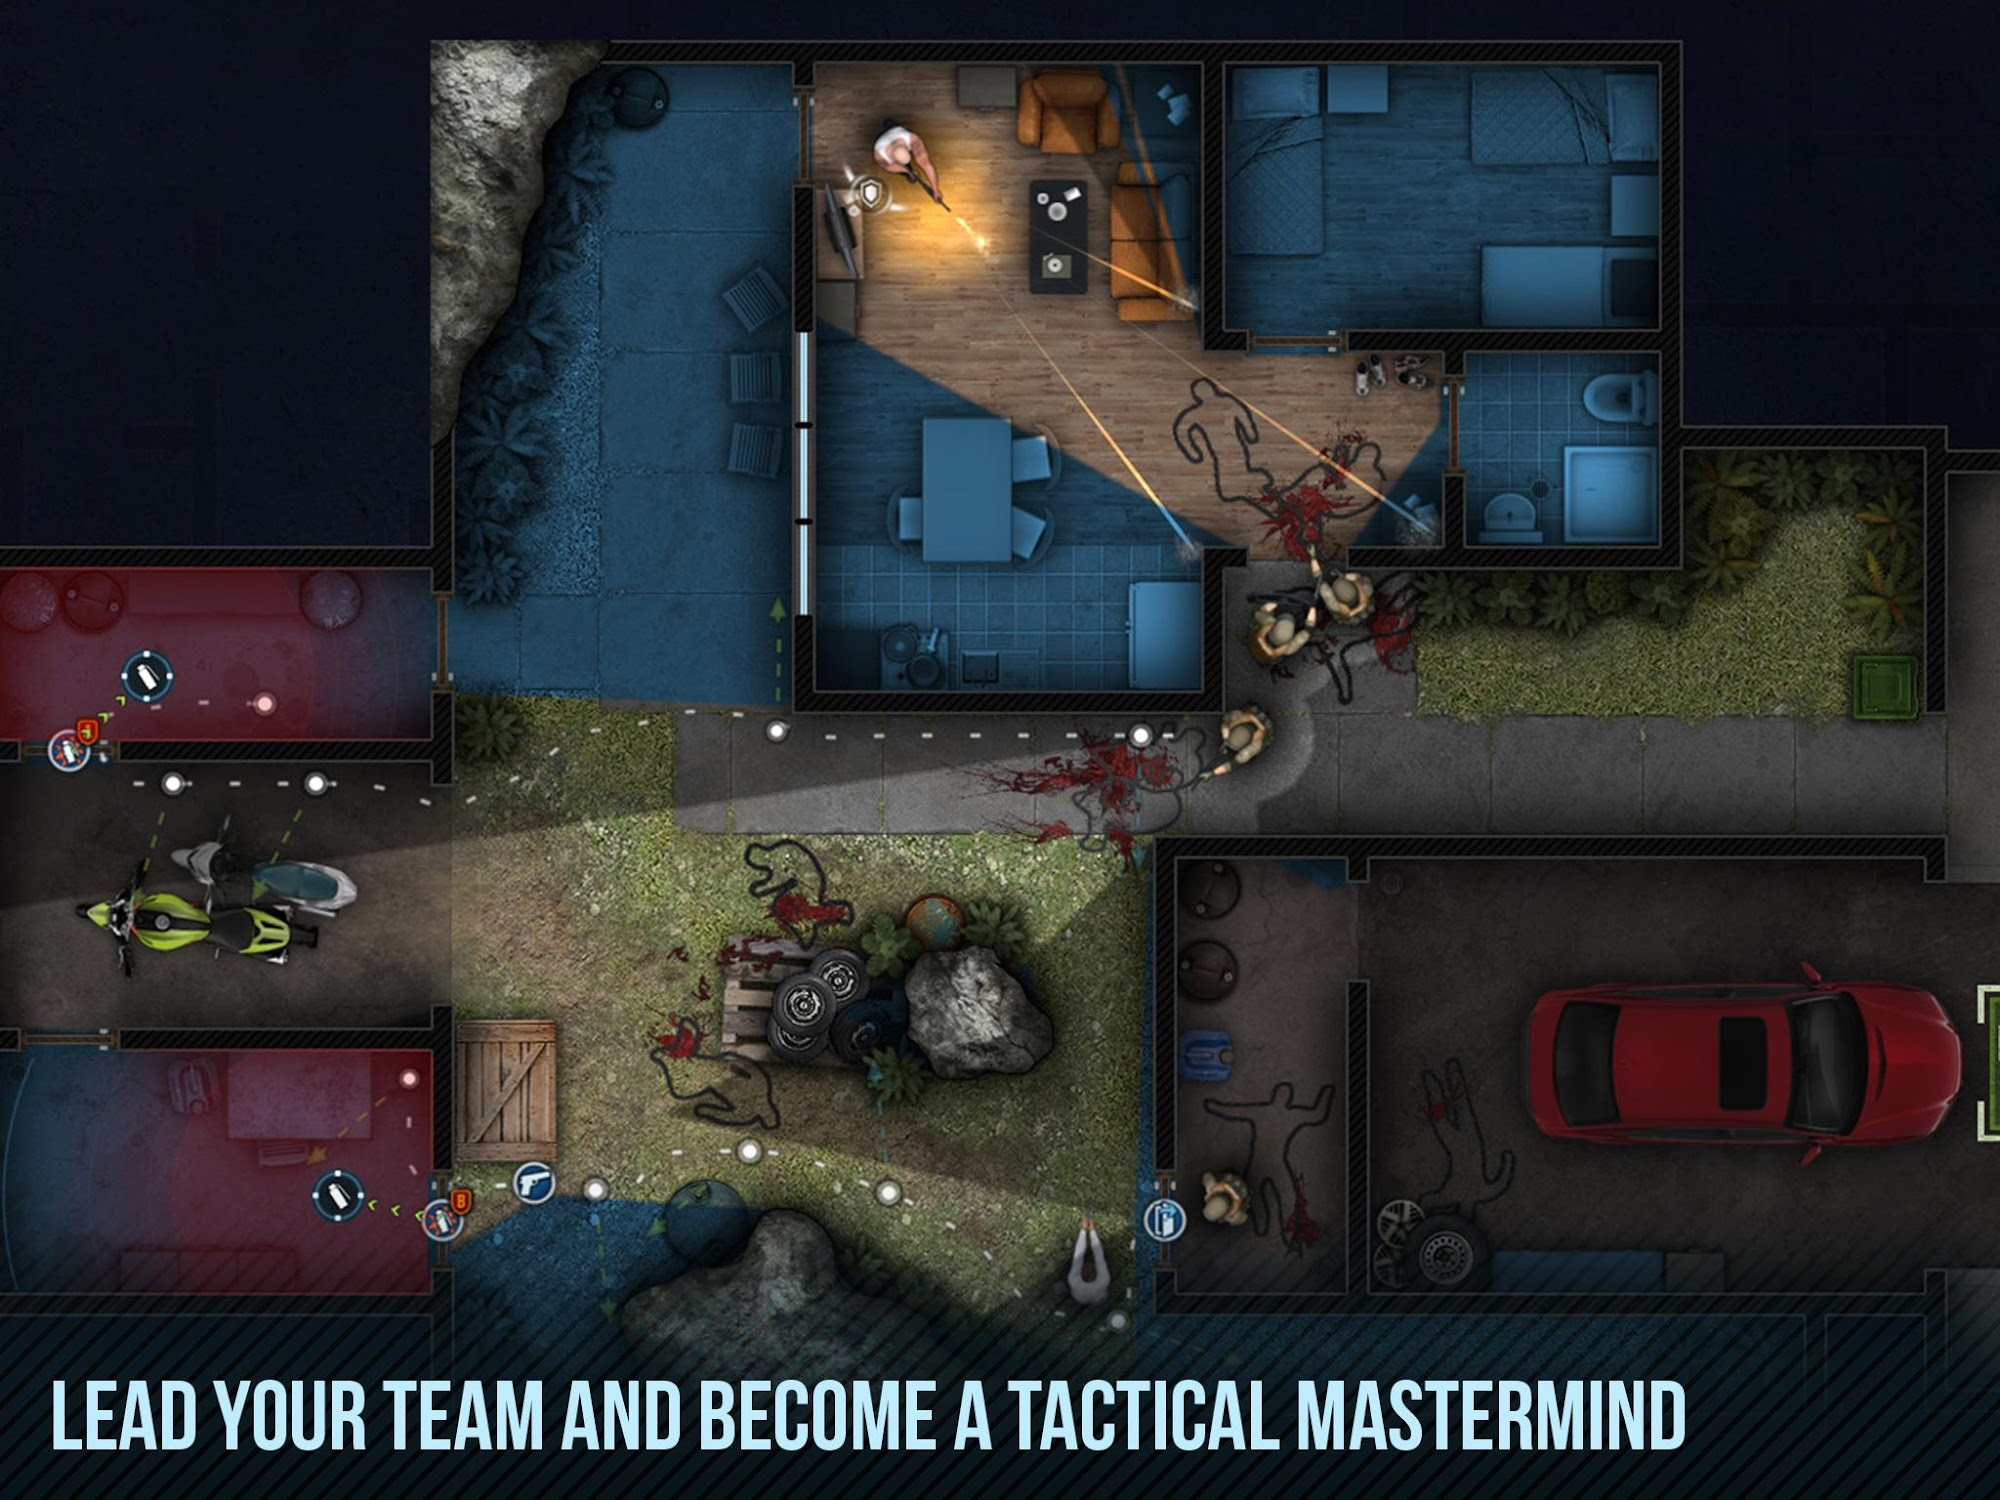 Door Kickers screenshot #1